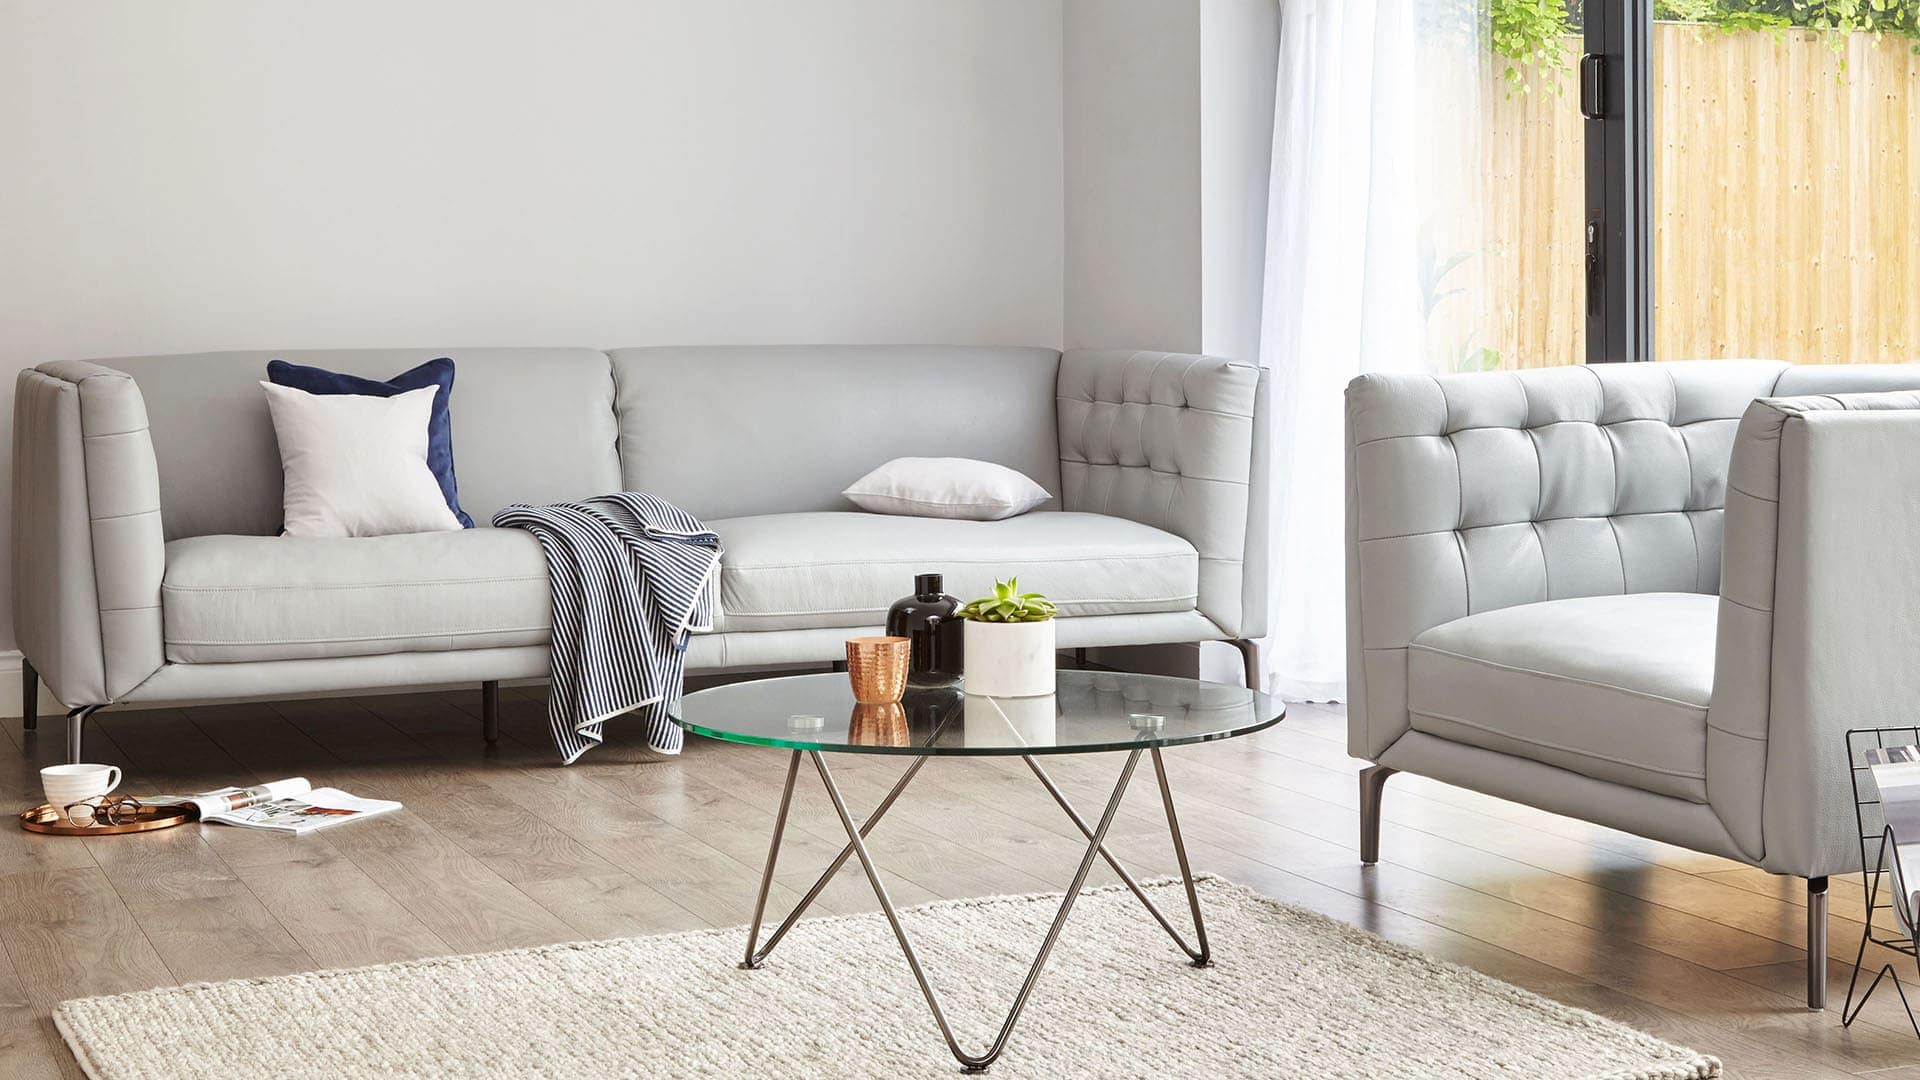 soft grey sofas in living room with round glass coffee table